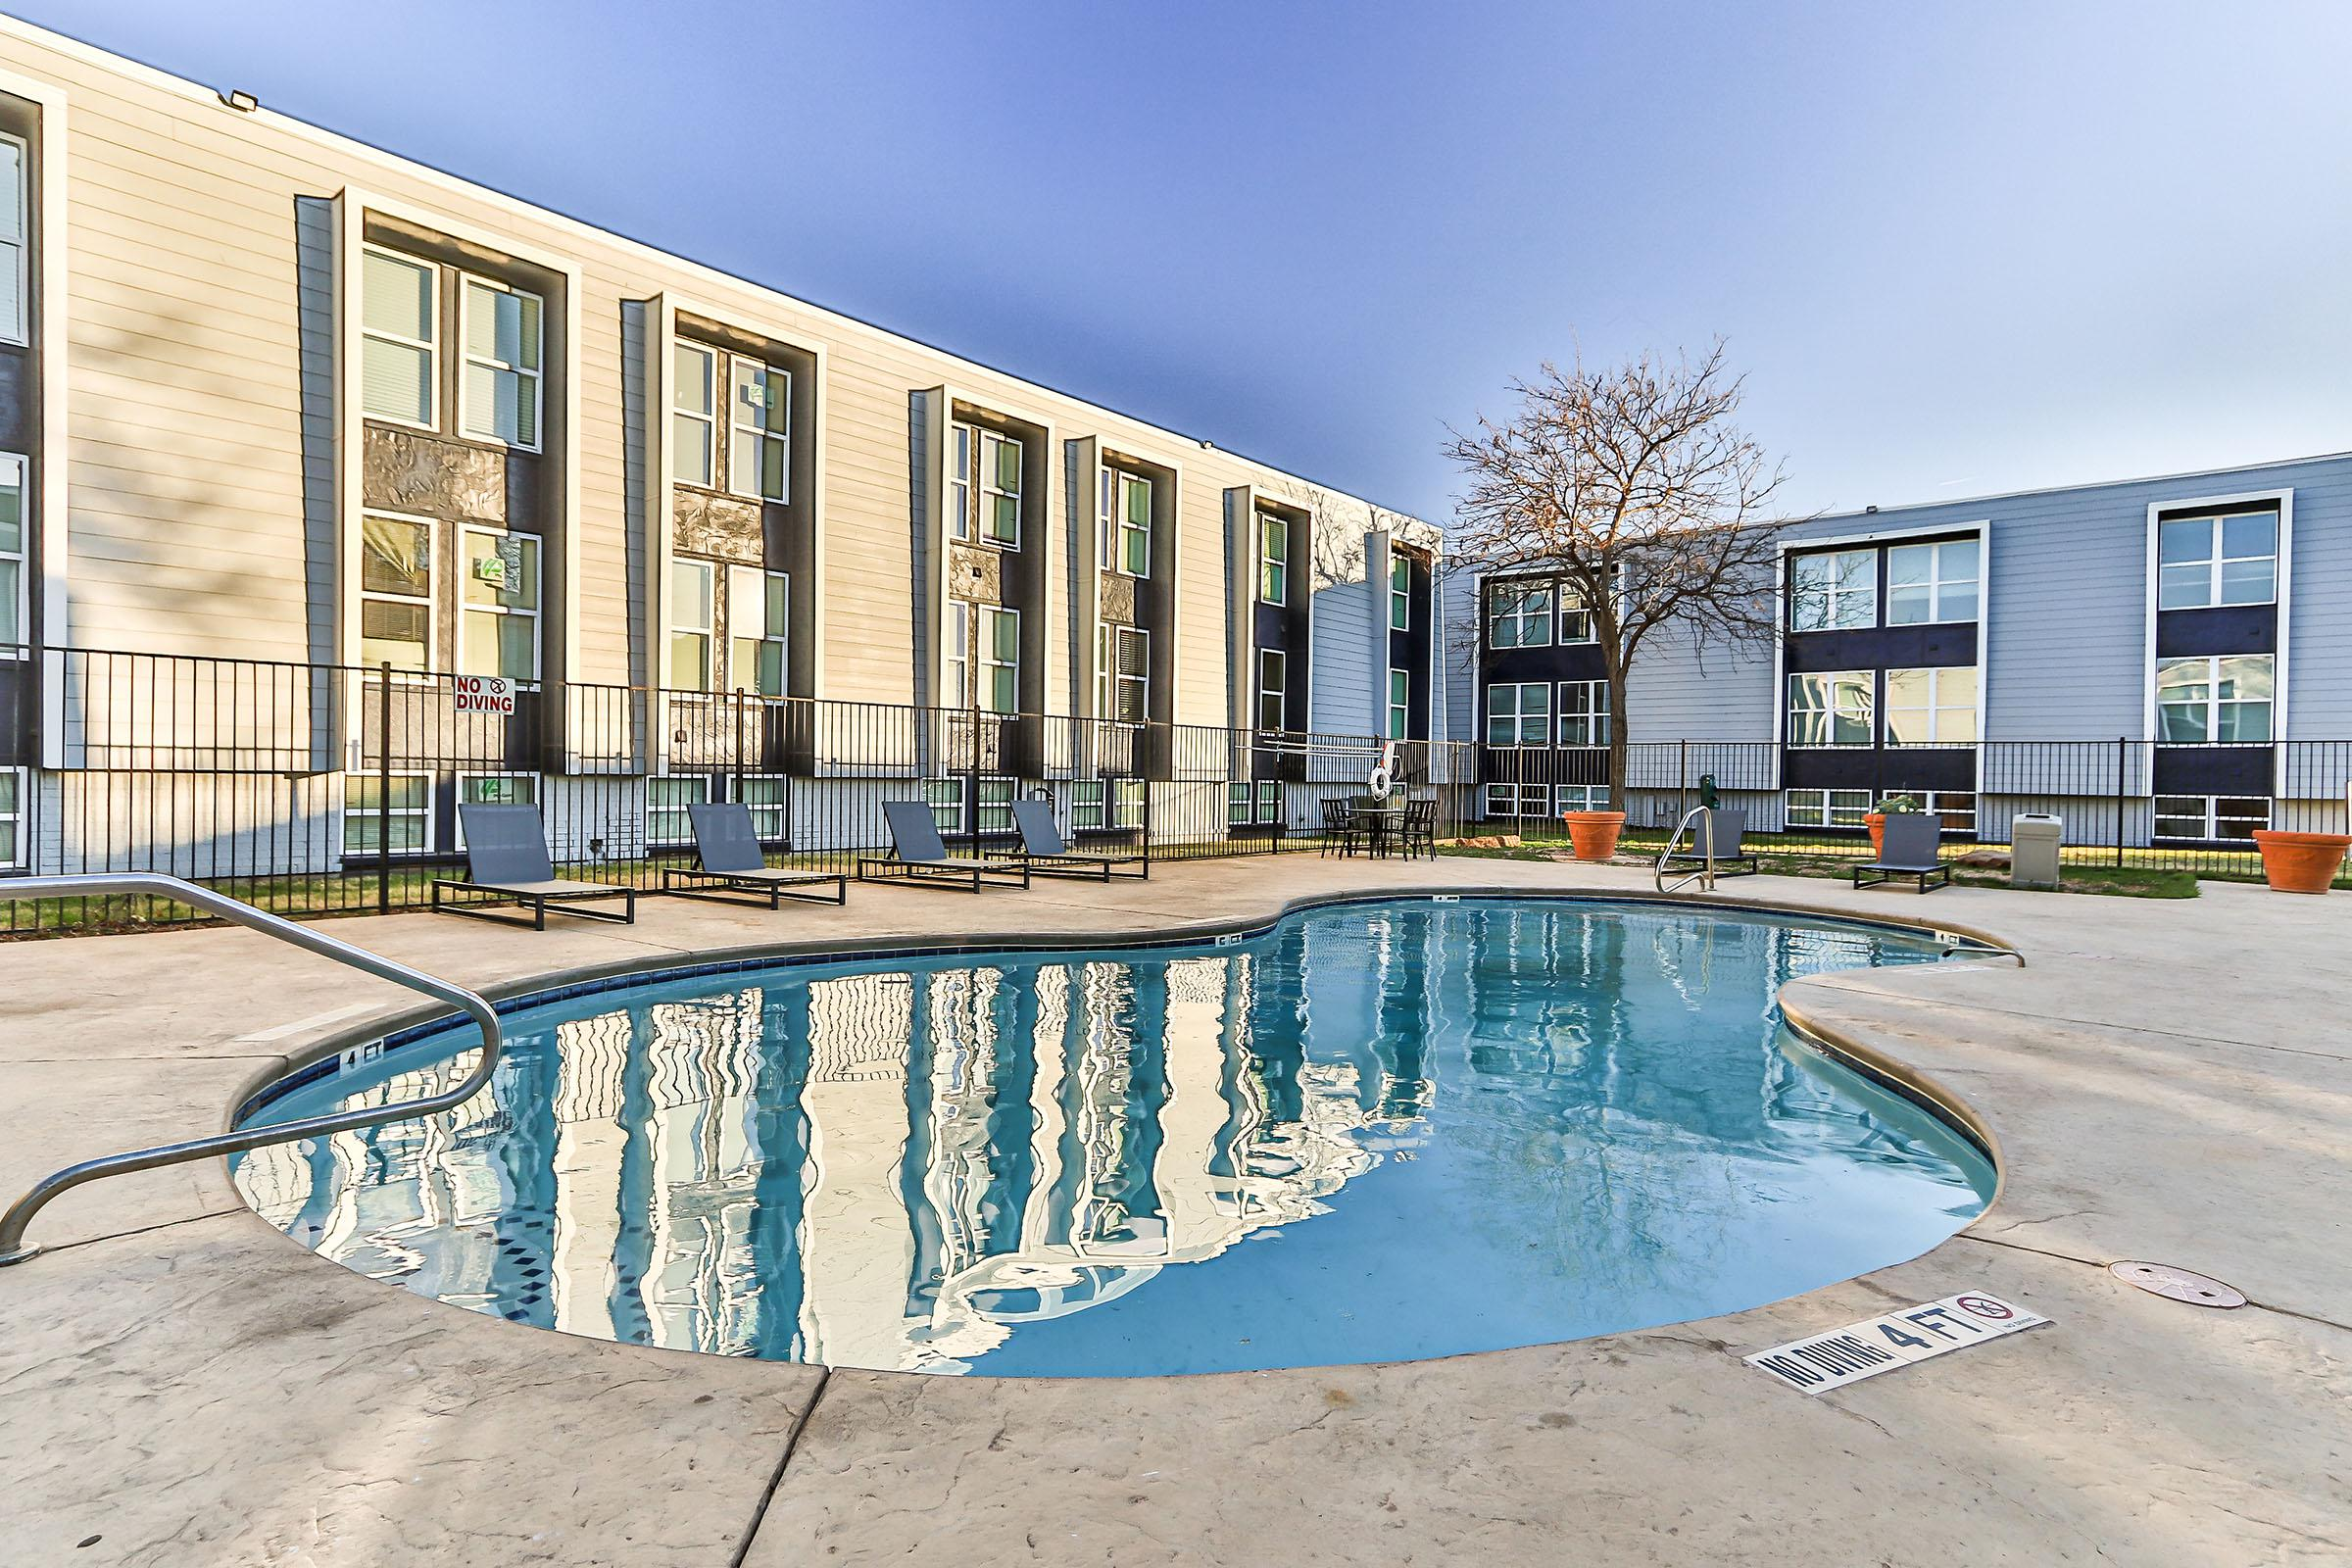 a pool next to a building